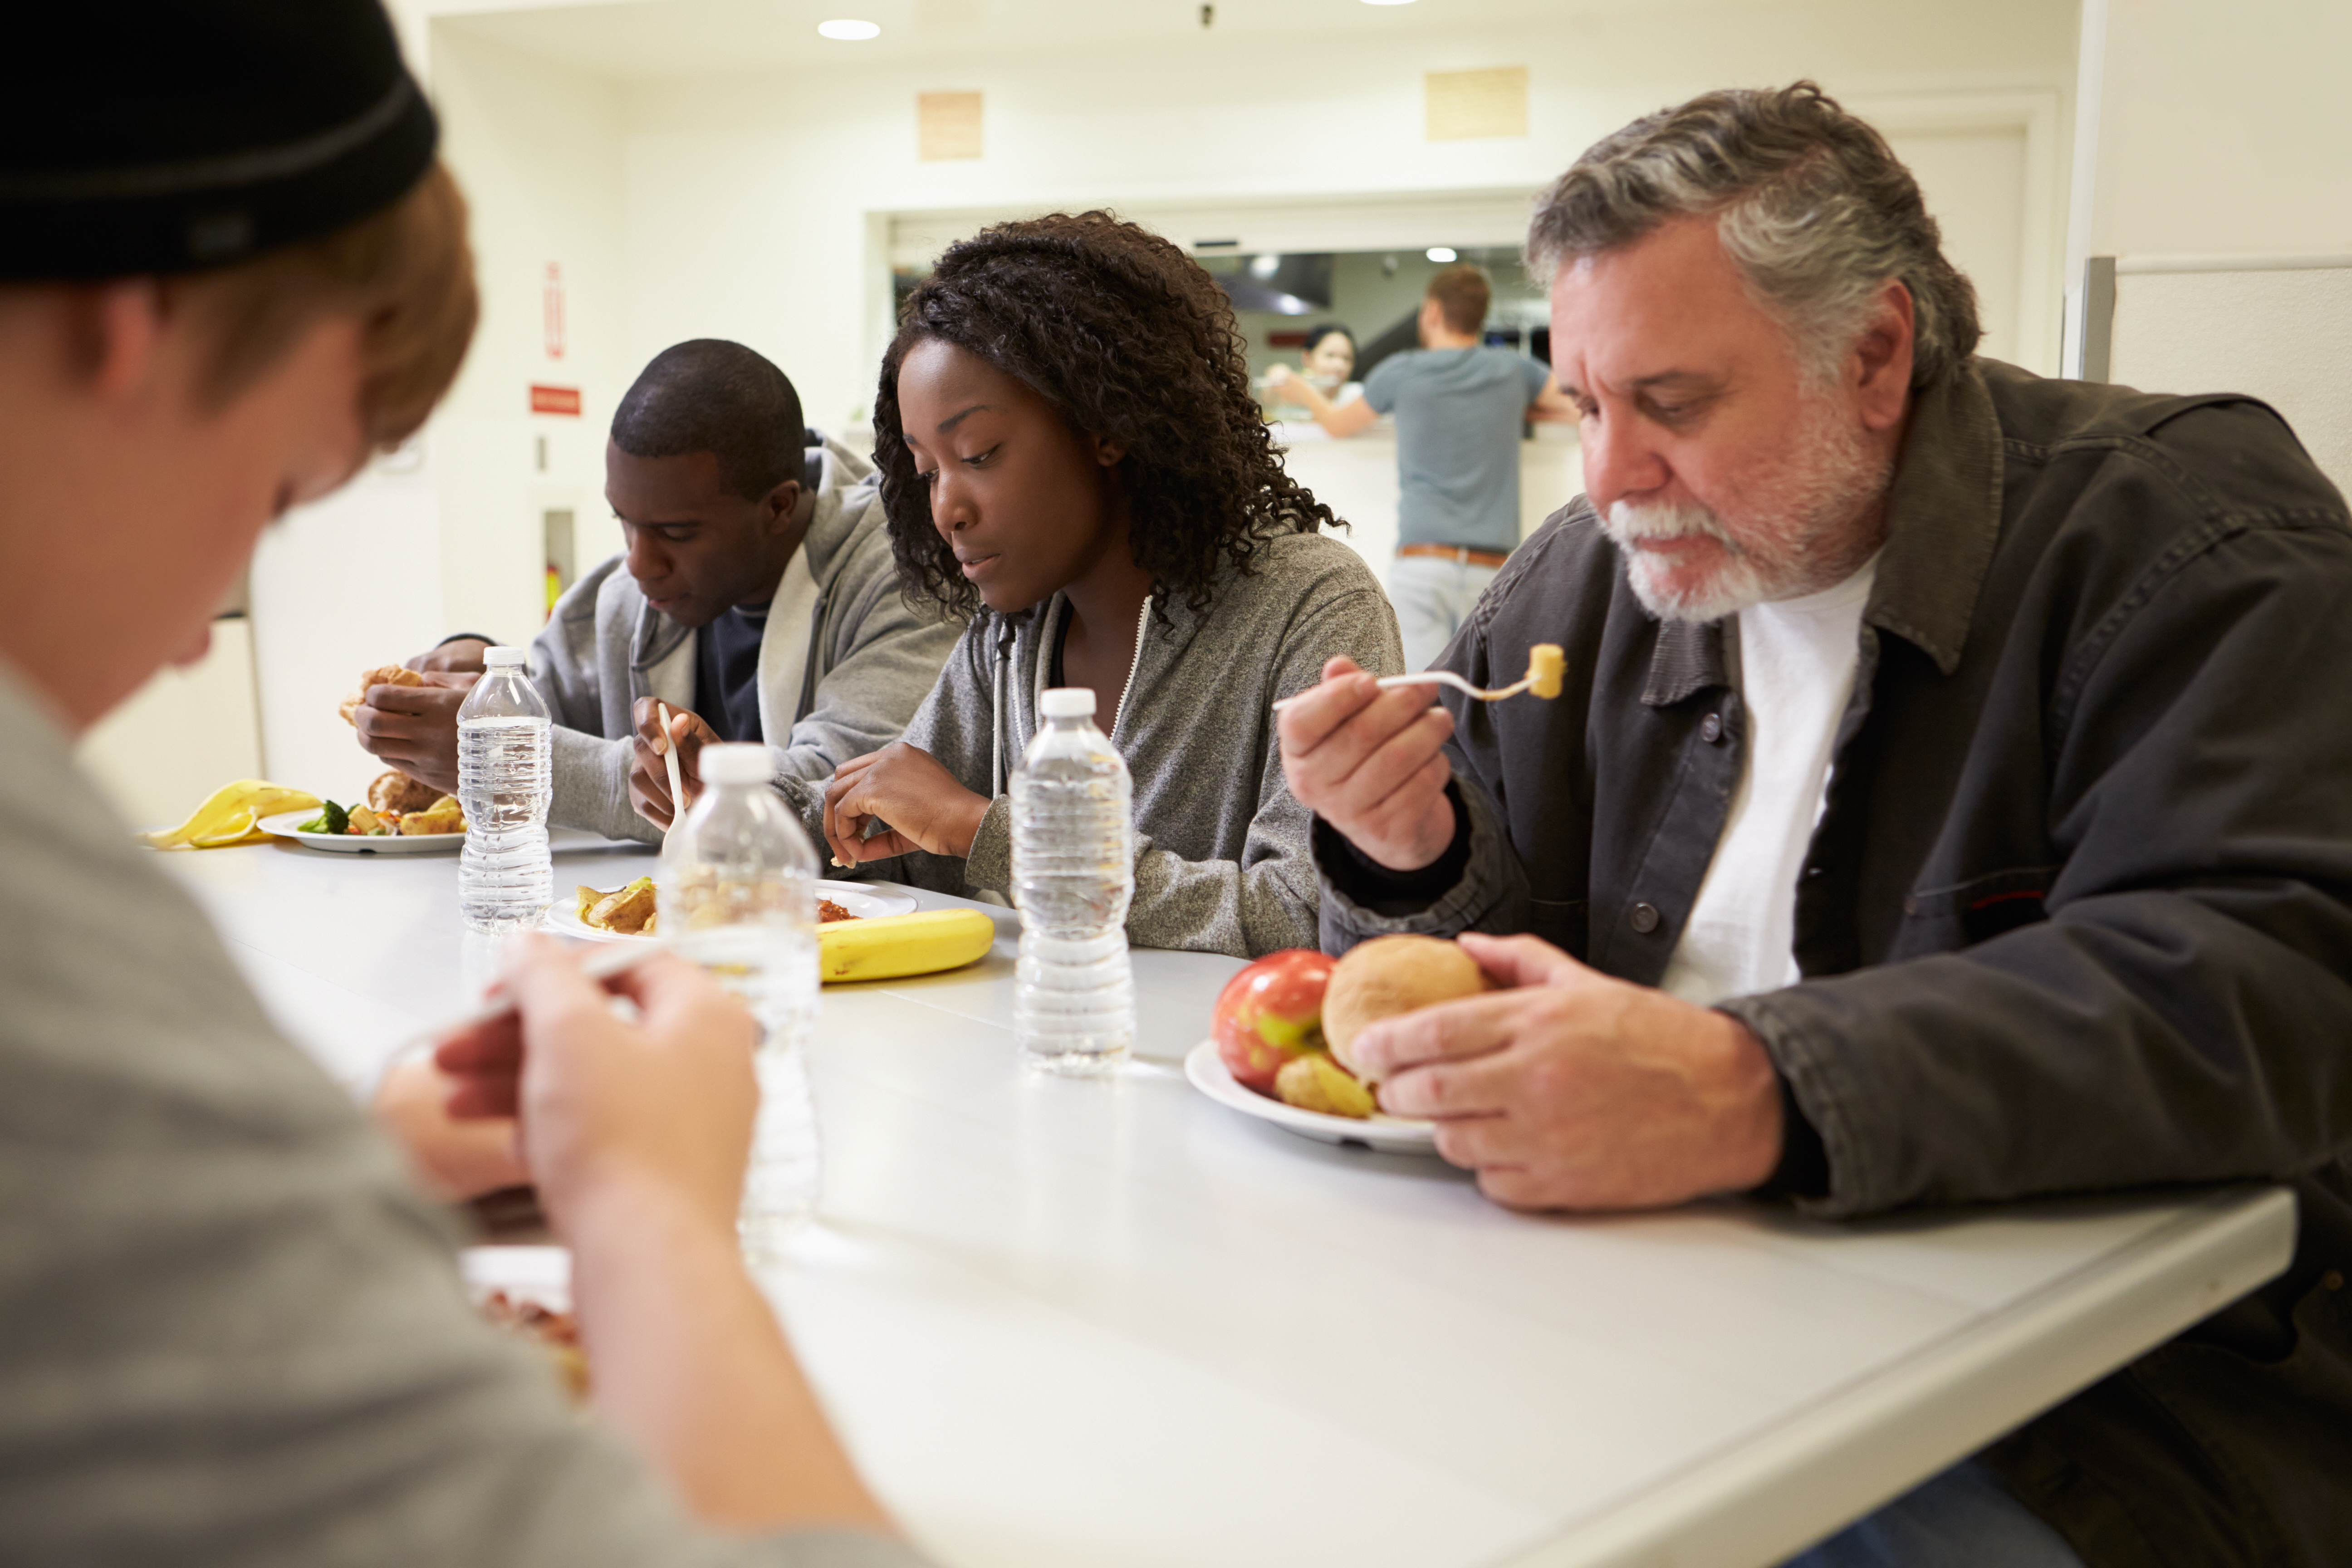 Amazing People Sitting At Table Eating Food In Homeless Shelter Download Free Architecture Designs Embacsunscenecom